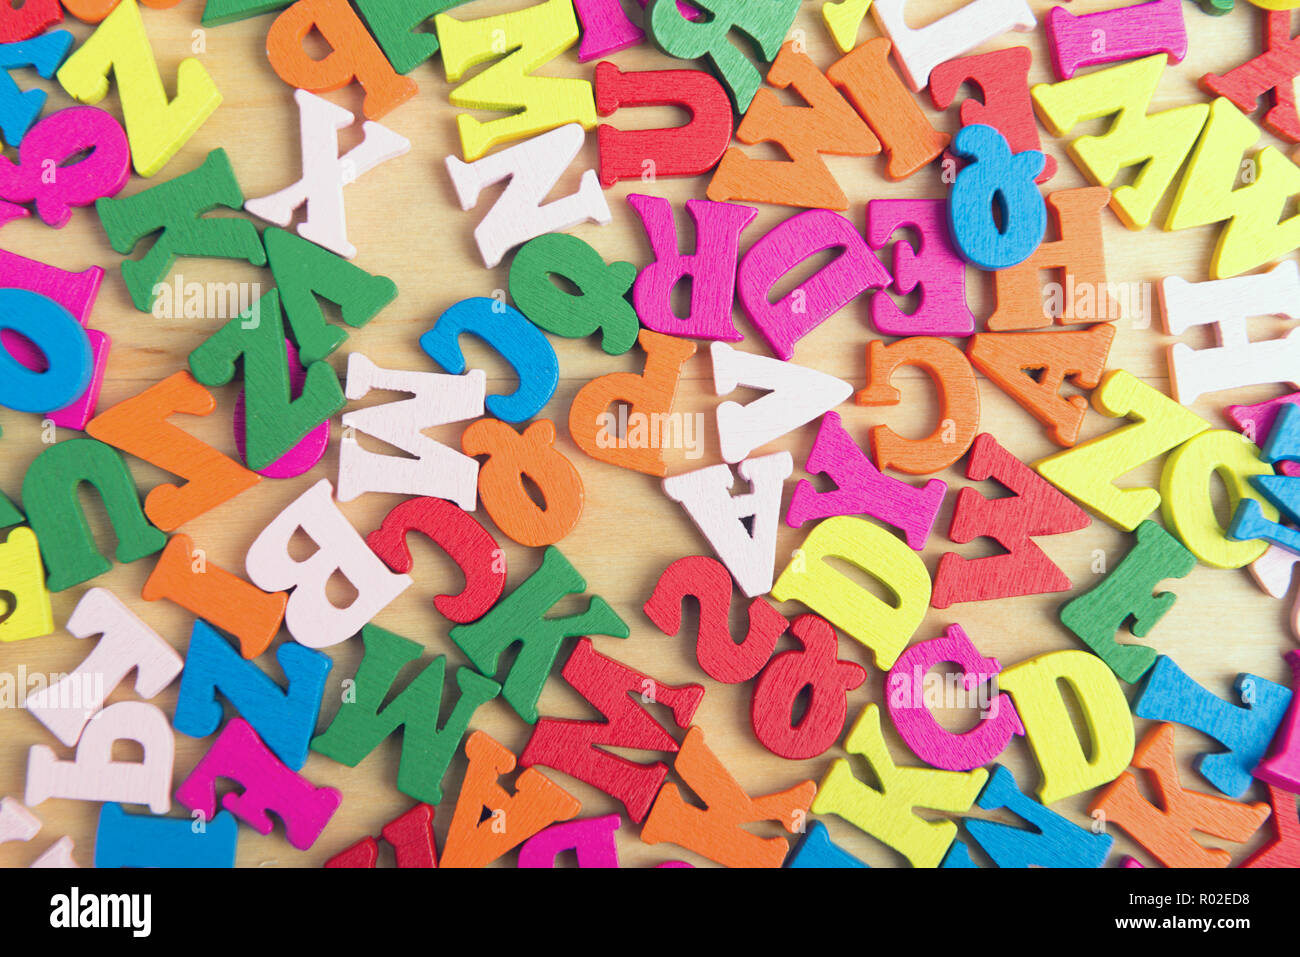 Color wooden letters of the English alphabet - Stock Image